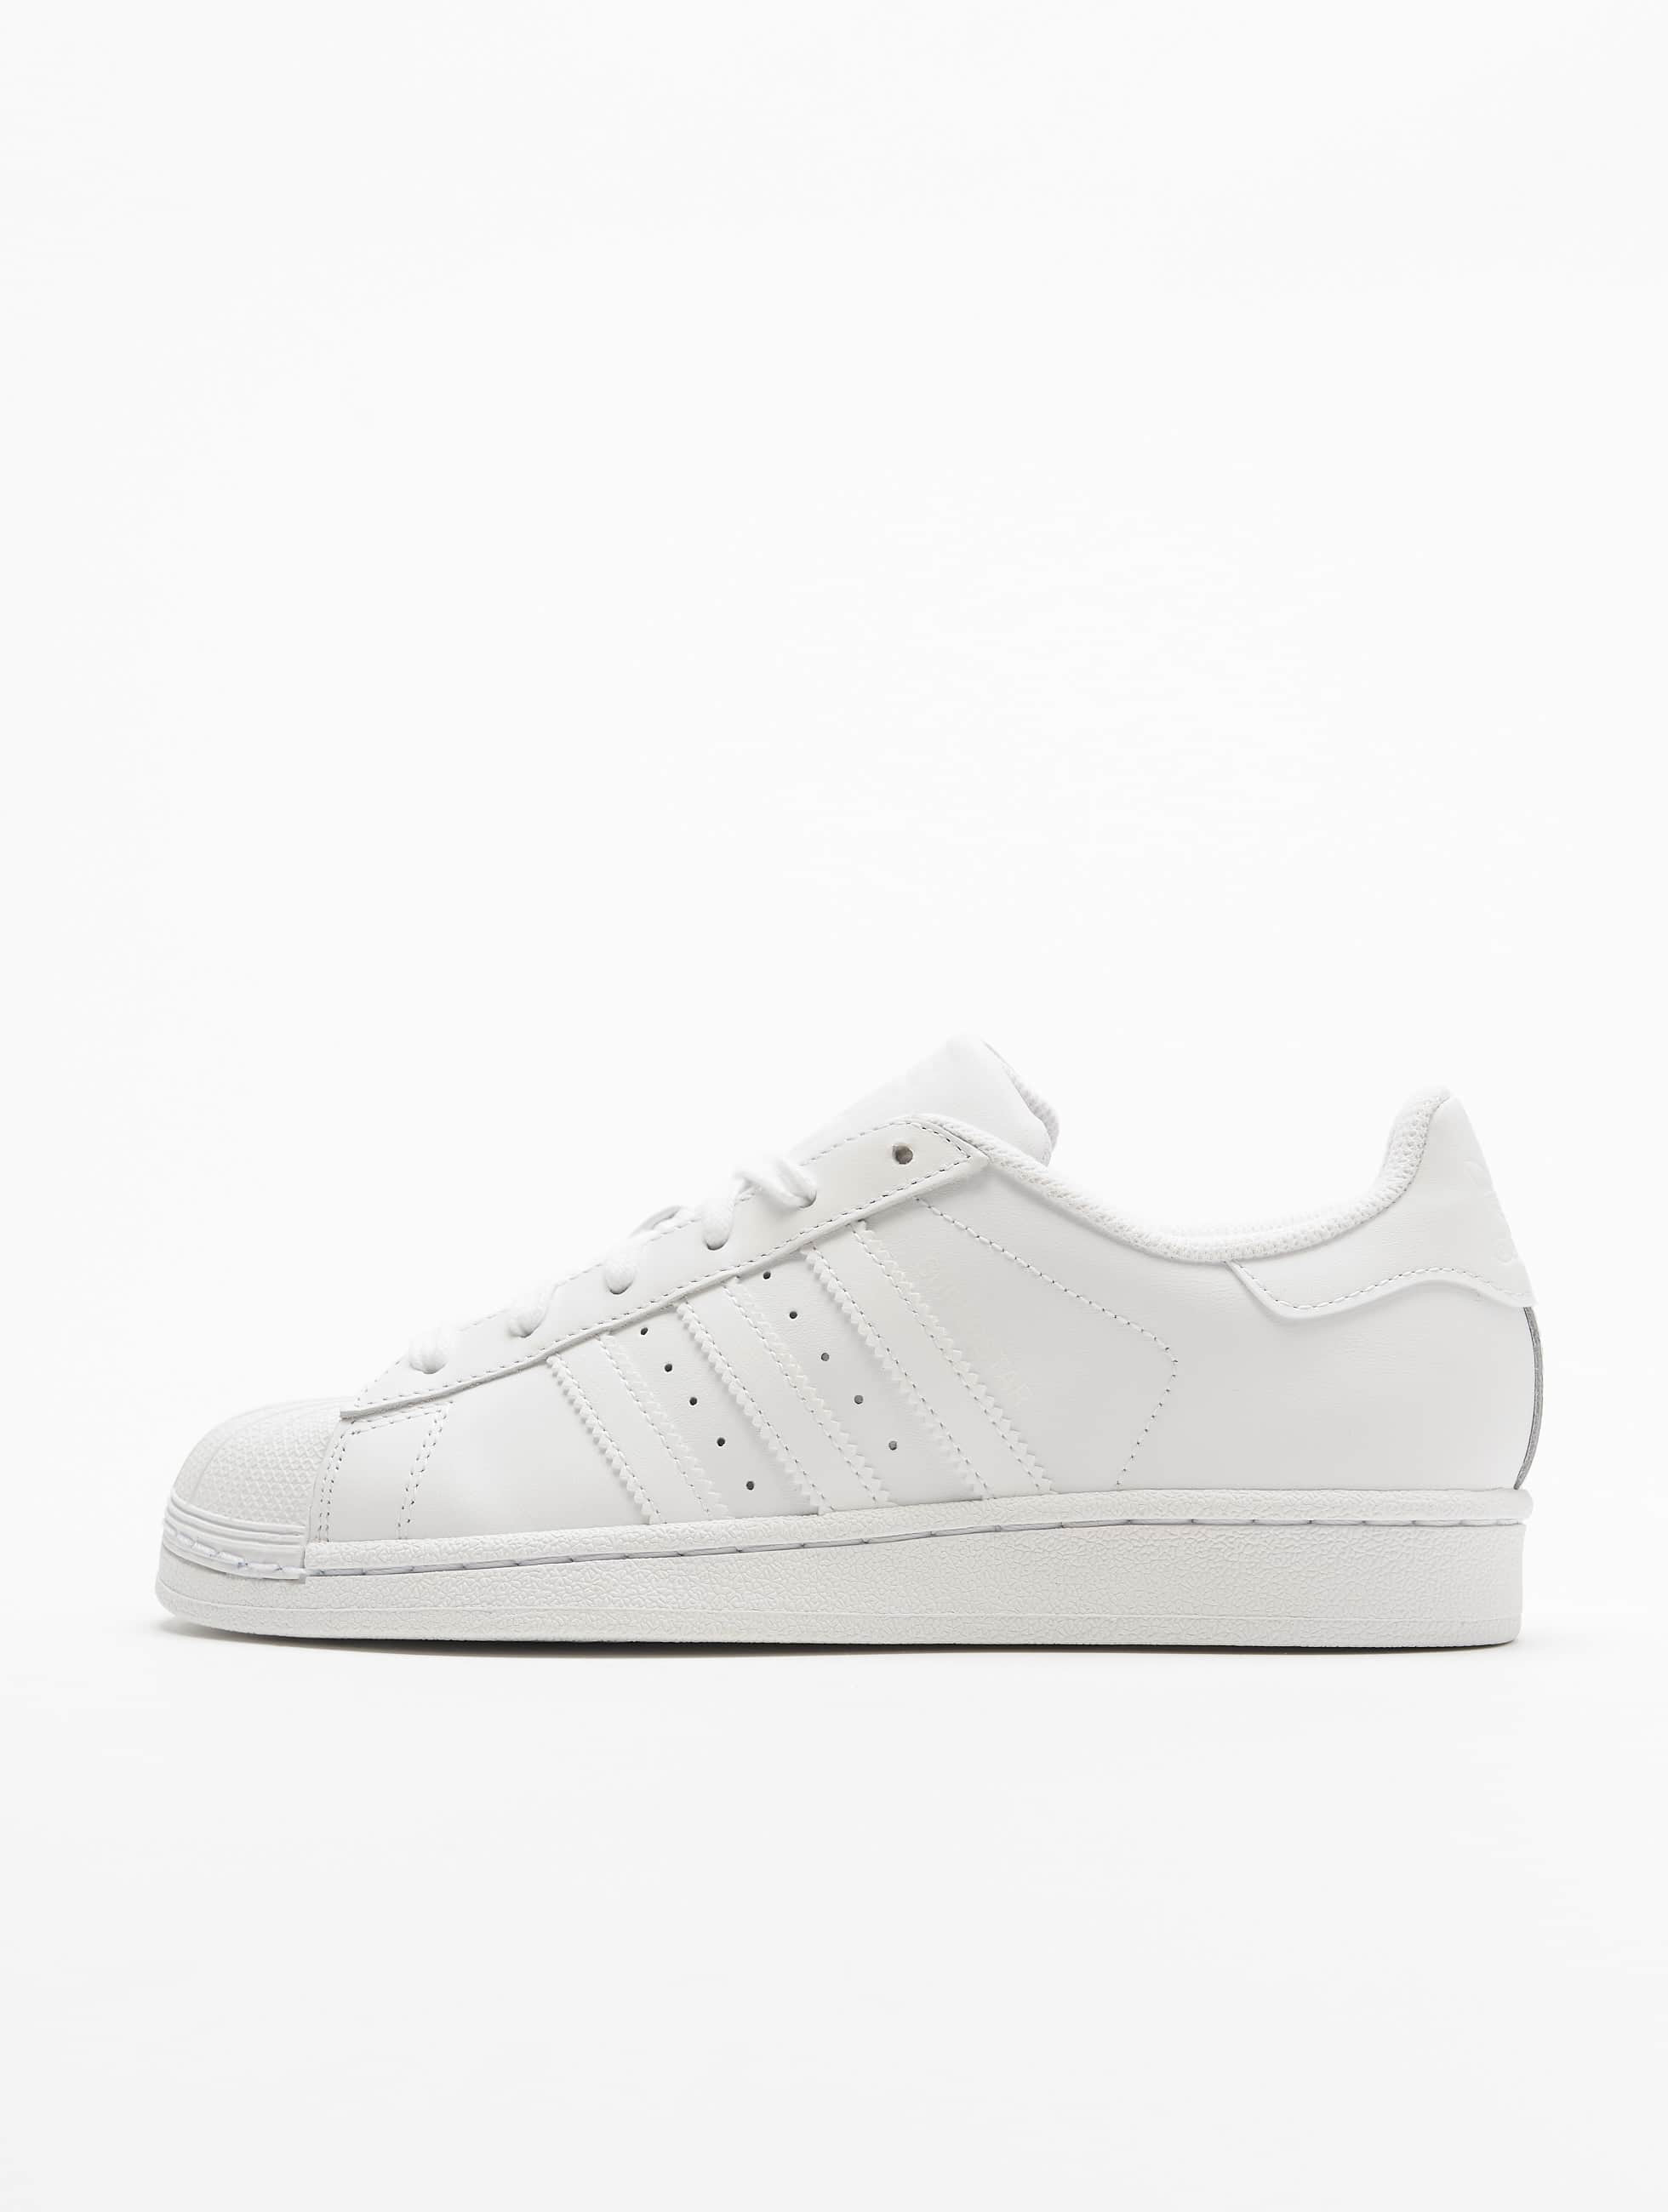 Adidas Superstar Foundation Sneakers White